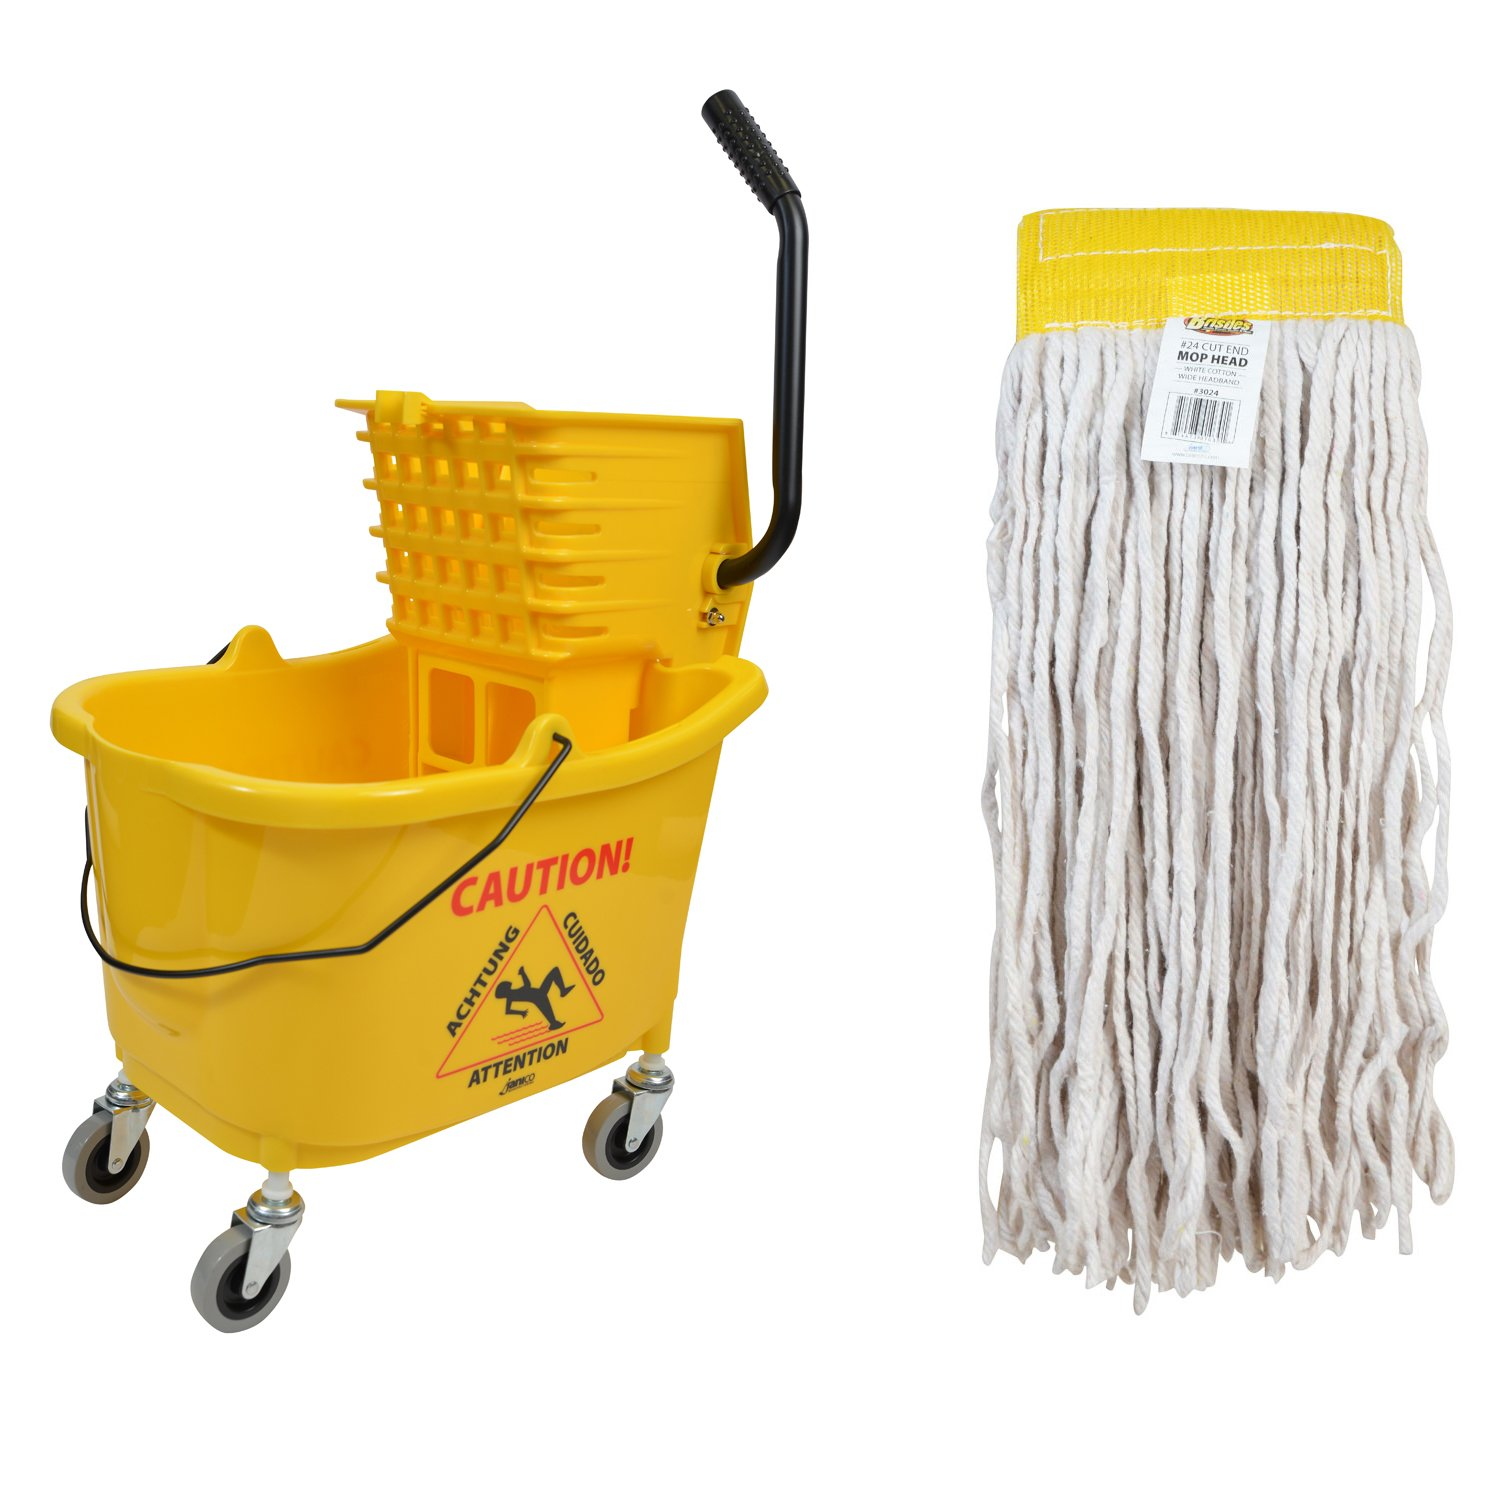 Janico 1010-3024-4 Mop Bucket Side Press Wringer Combo with Wet Cut End Mop Head Replacement